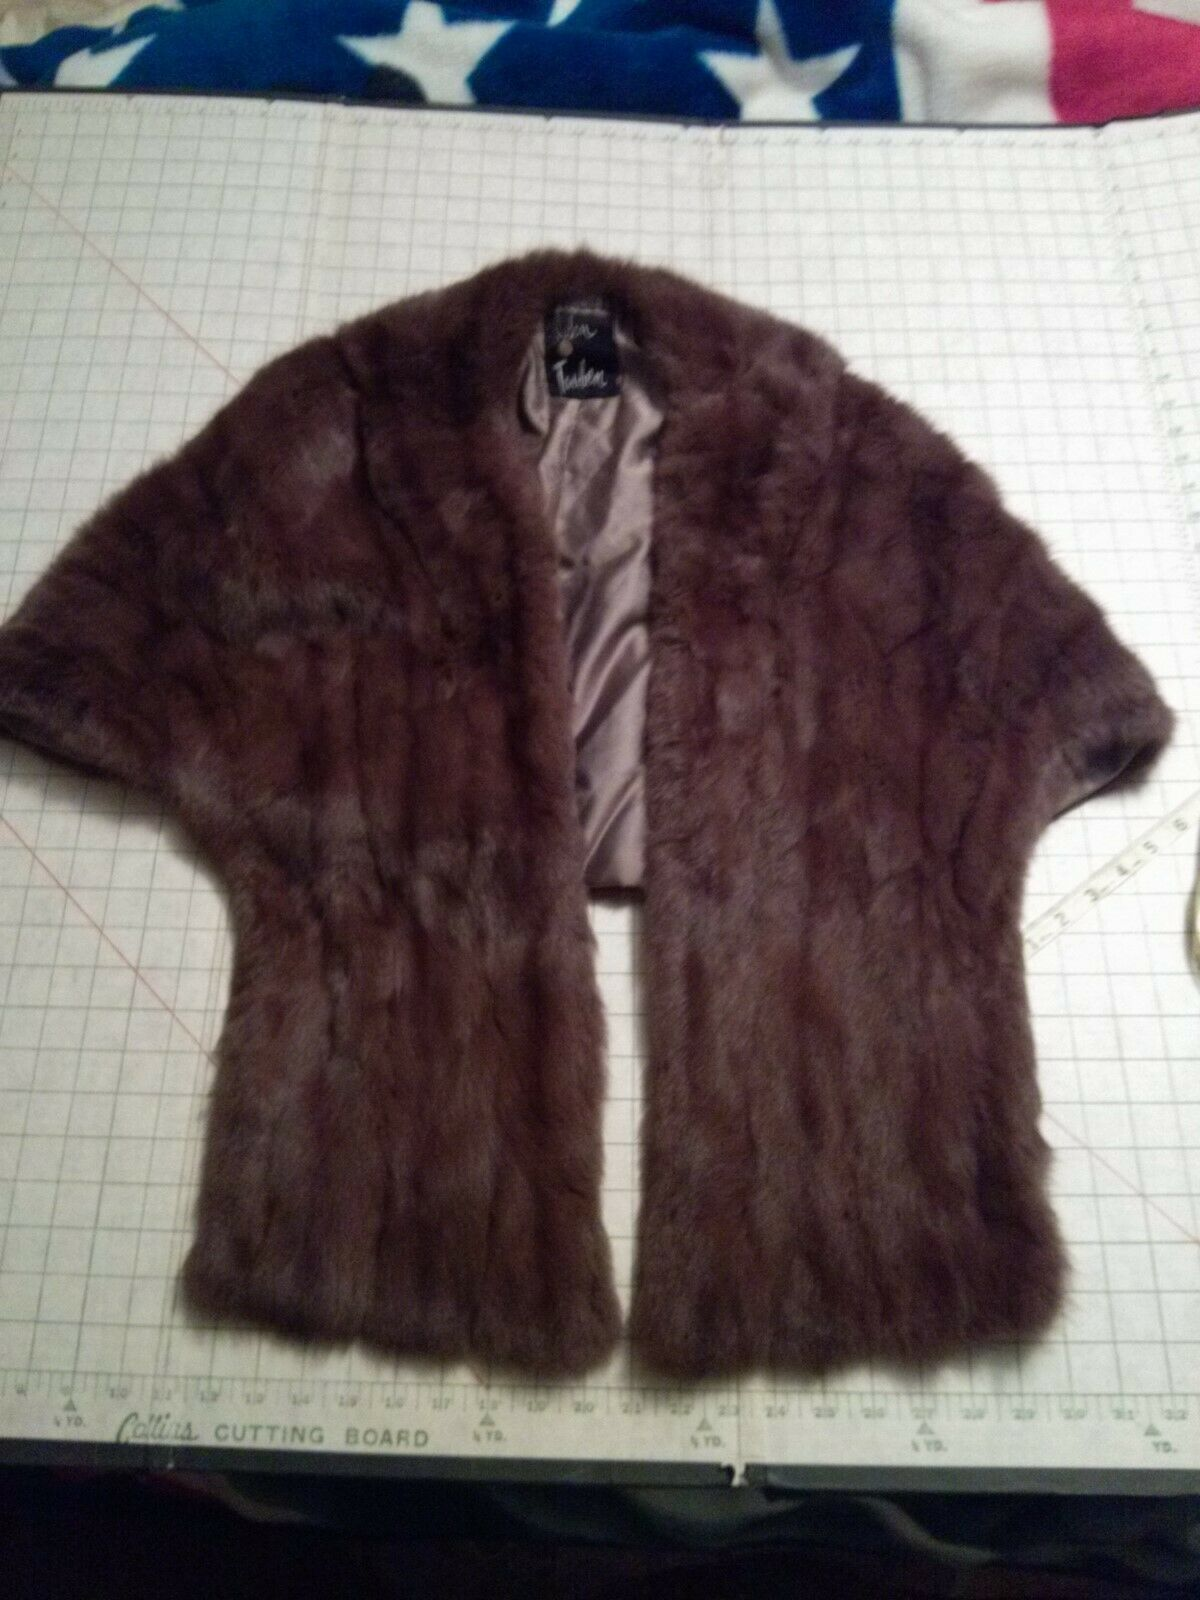 John Tauben Fur Shawl Great Condition Brown Brown Brown One Size Fits Most be6a4a